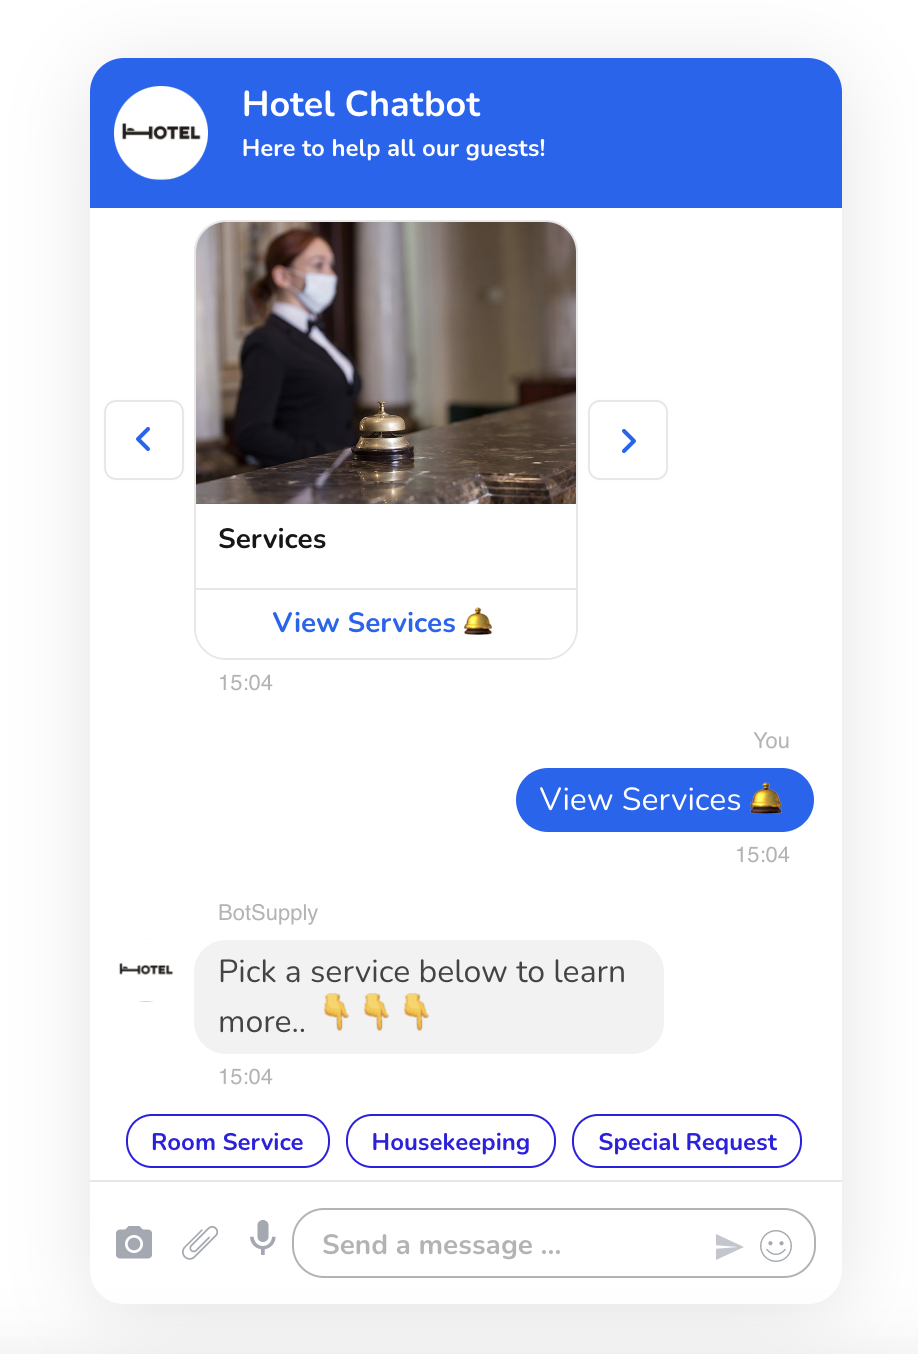 In the image the bot displays a carousel of the hotel's services and allows the guest to learn more on those.